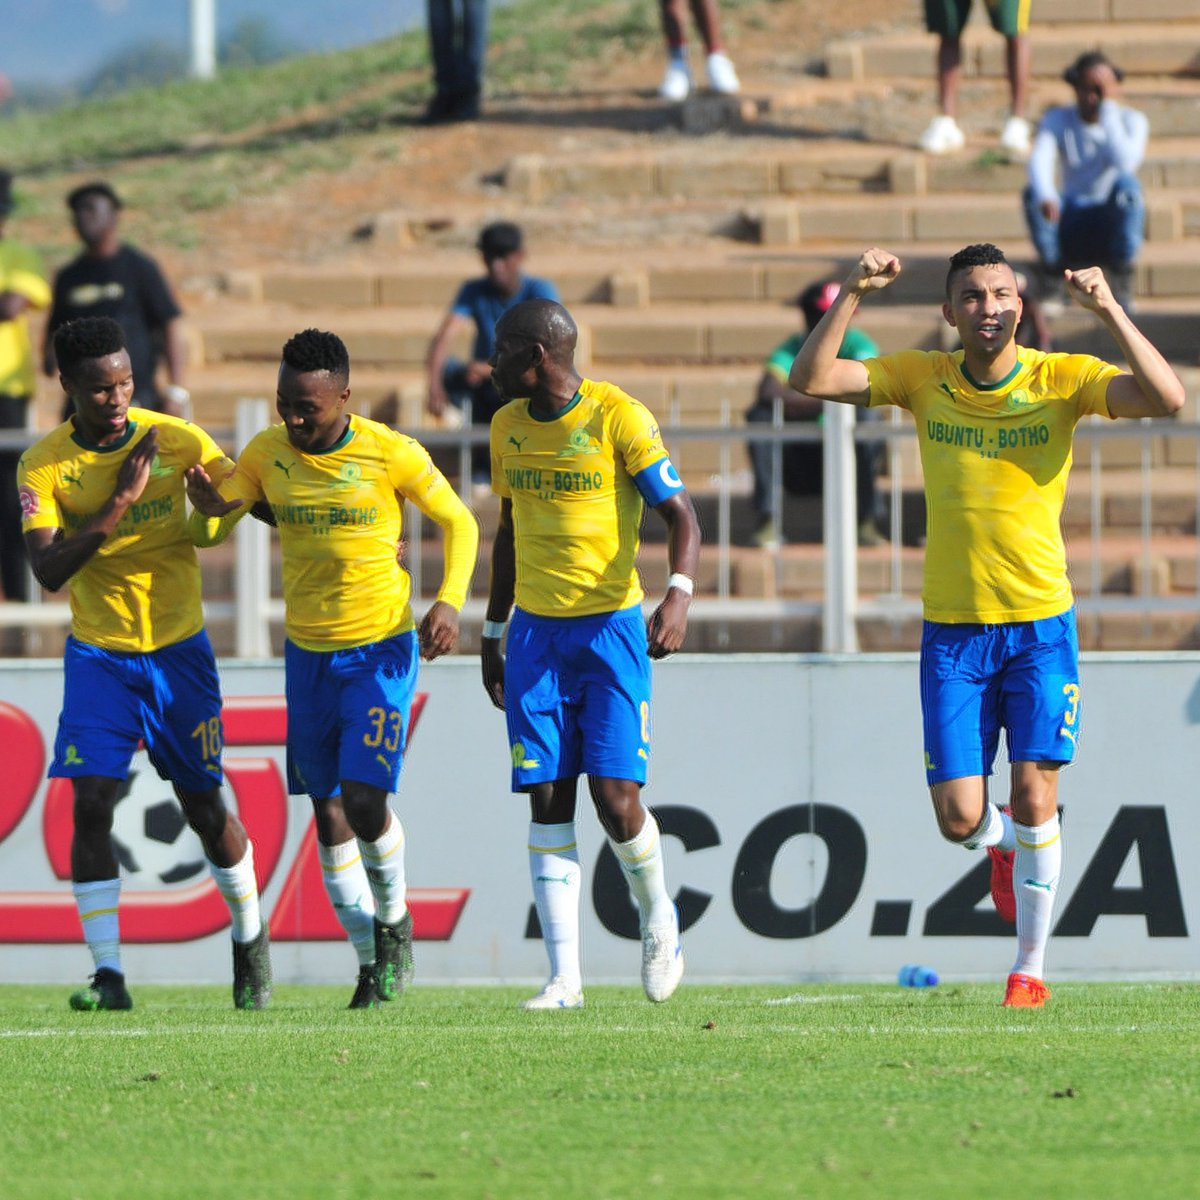 Mamelodi Sundowns closed the gap at the top of the Absa Premiership table to within three points on Saturday afternoon following a 2-1 victory away to Baroka FC, with goals coming from Ricardo Nascimento and Themba Zwane in either half.  Full Story: https://bit.ly/2VWqzrC